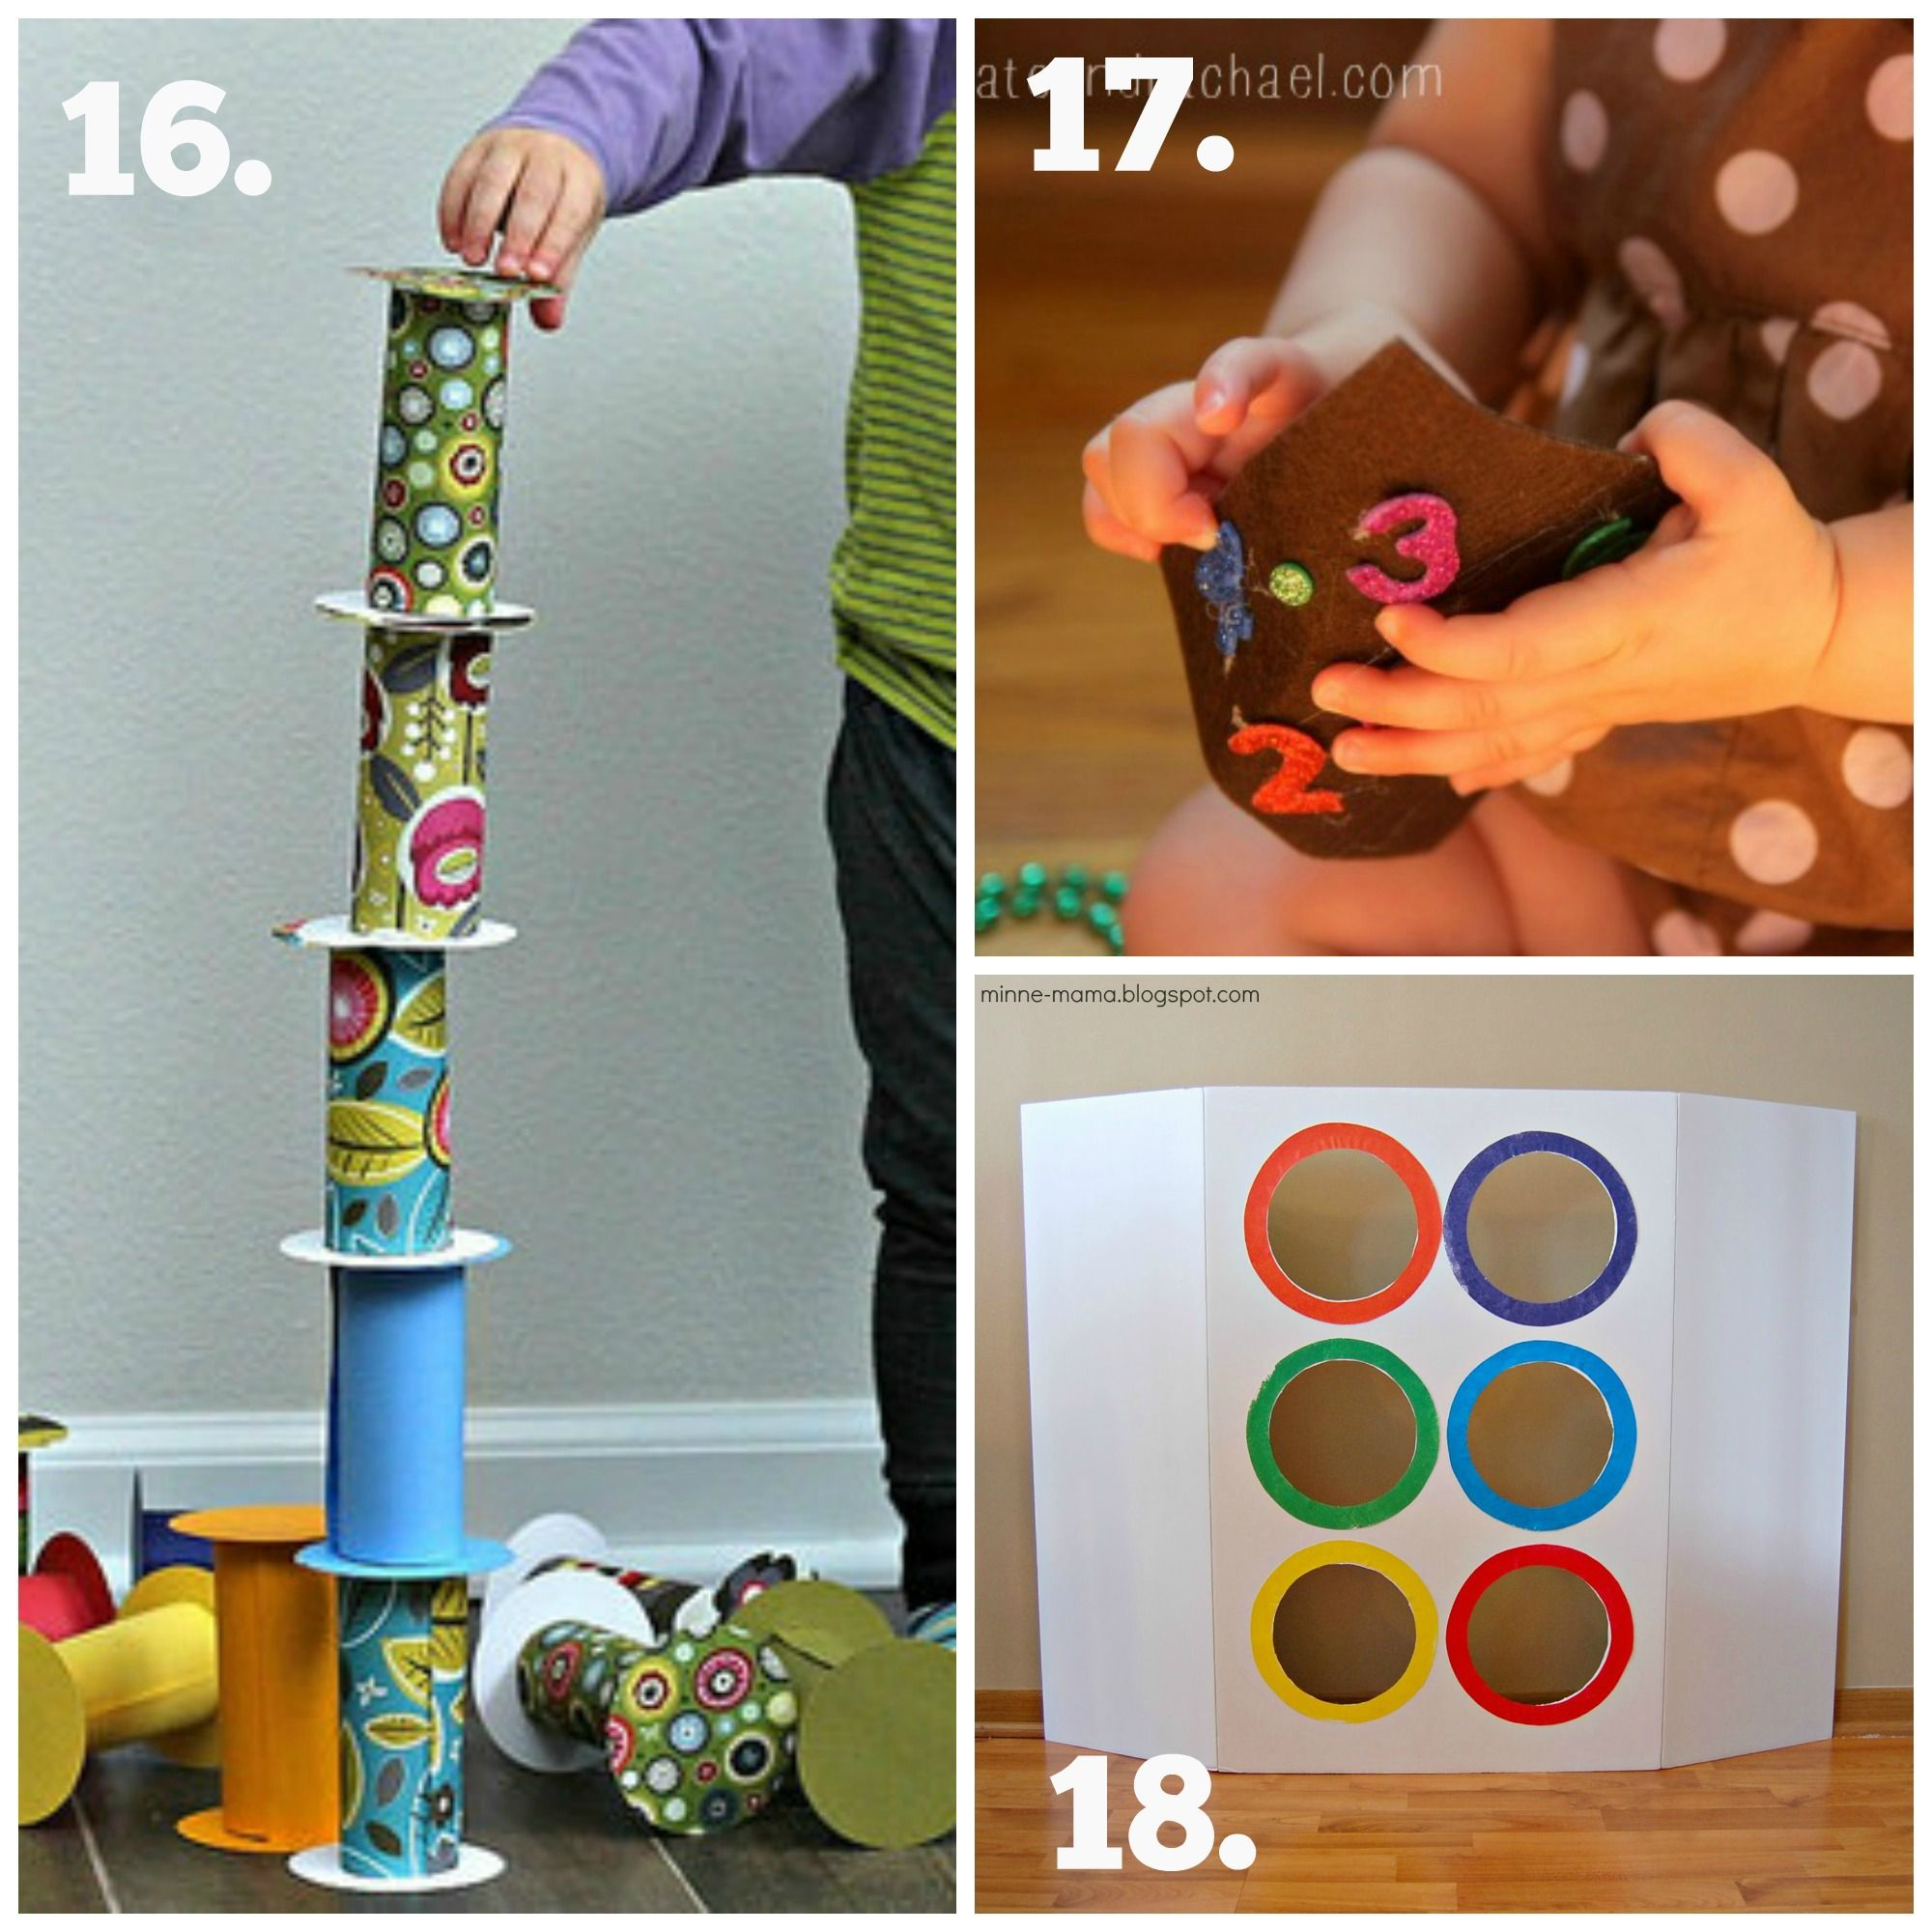 Recycled Play Series DIY Baby & Toddler Toys